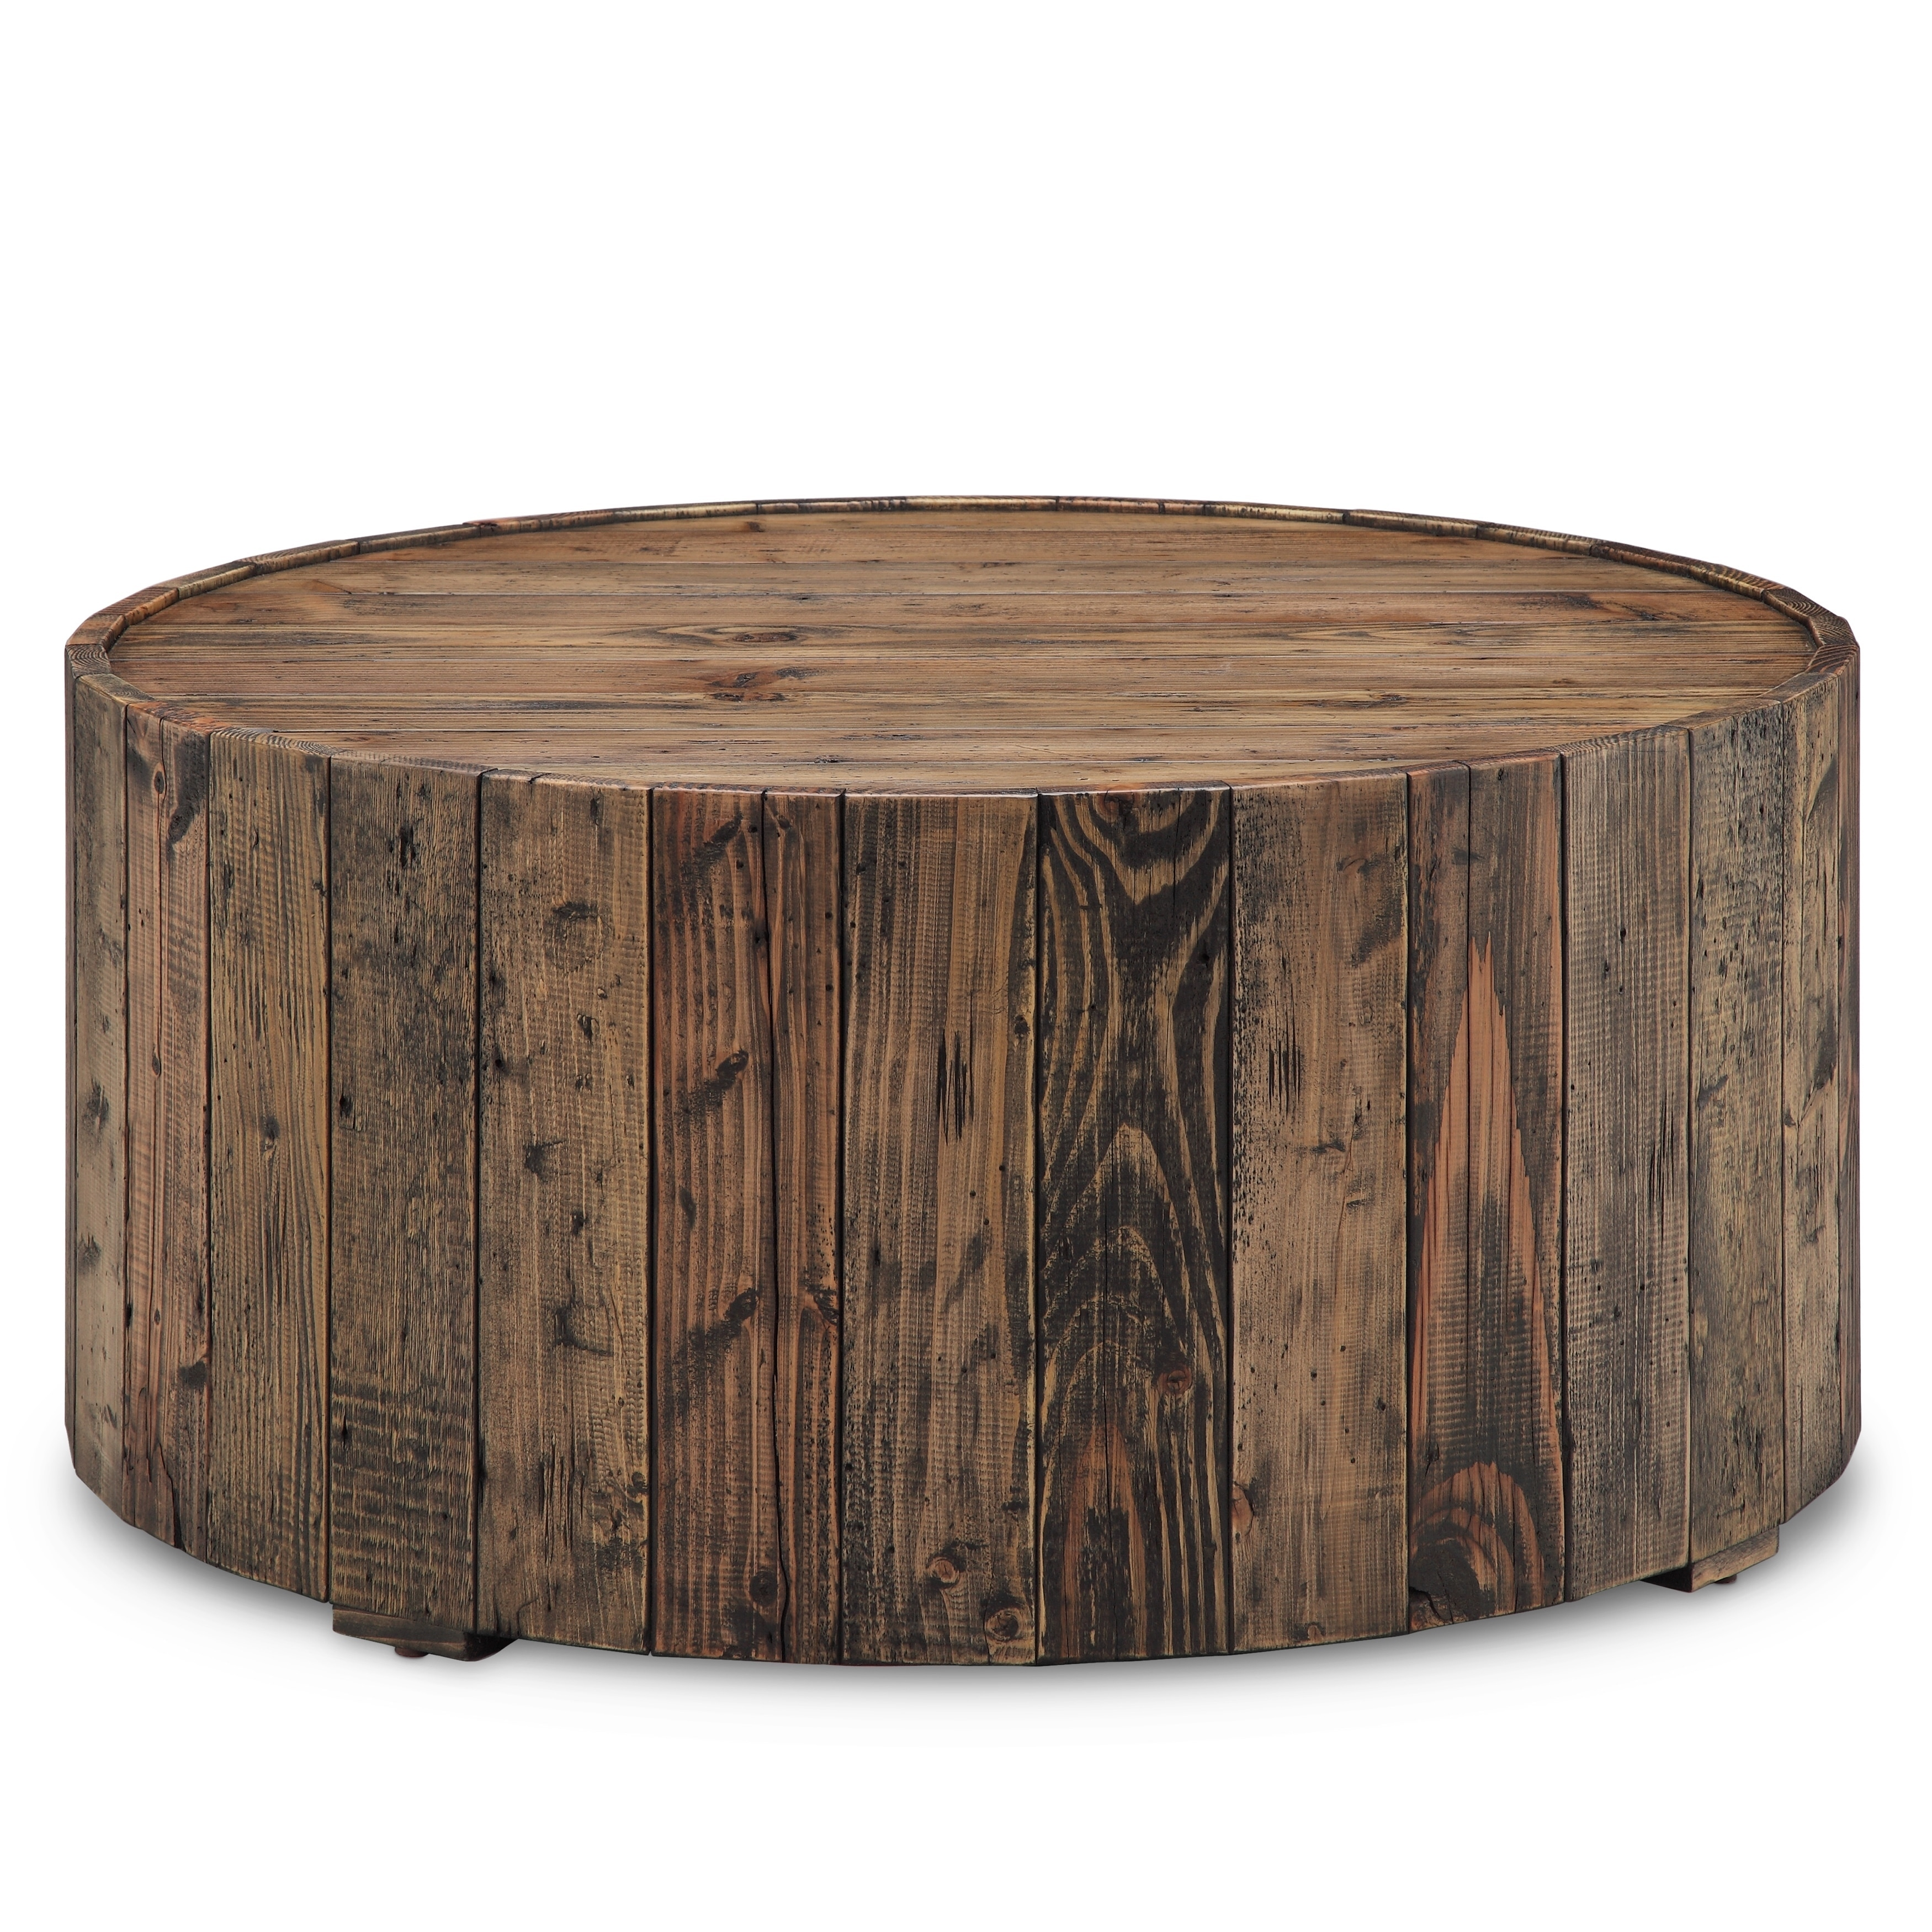 Carbon Loft Horace Rustic Reclaimed Pine Round Coffee Table With Casters